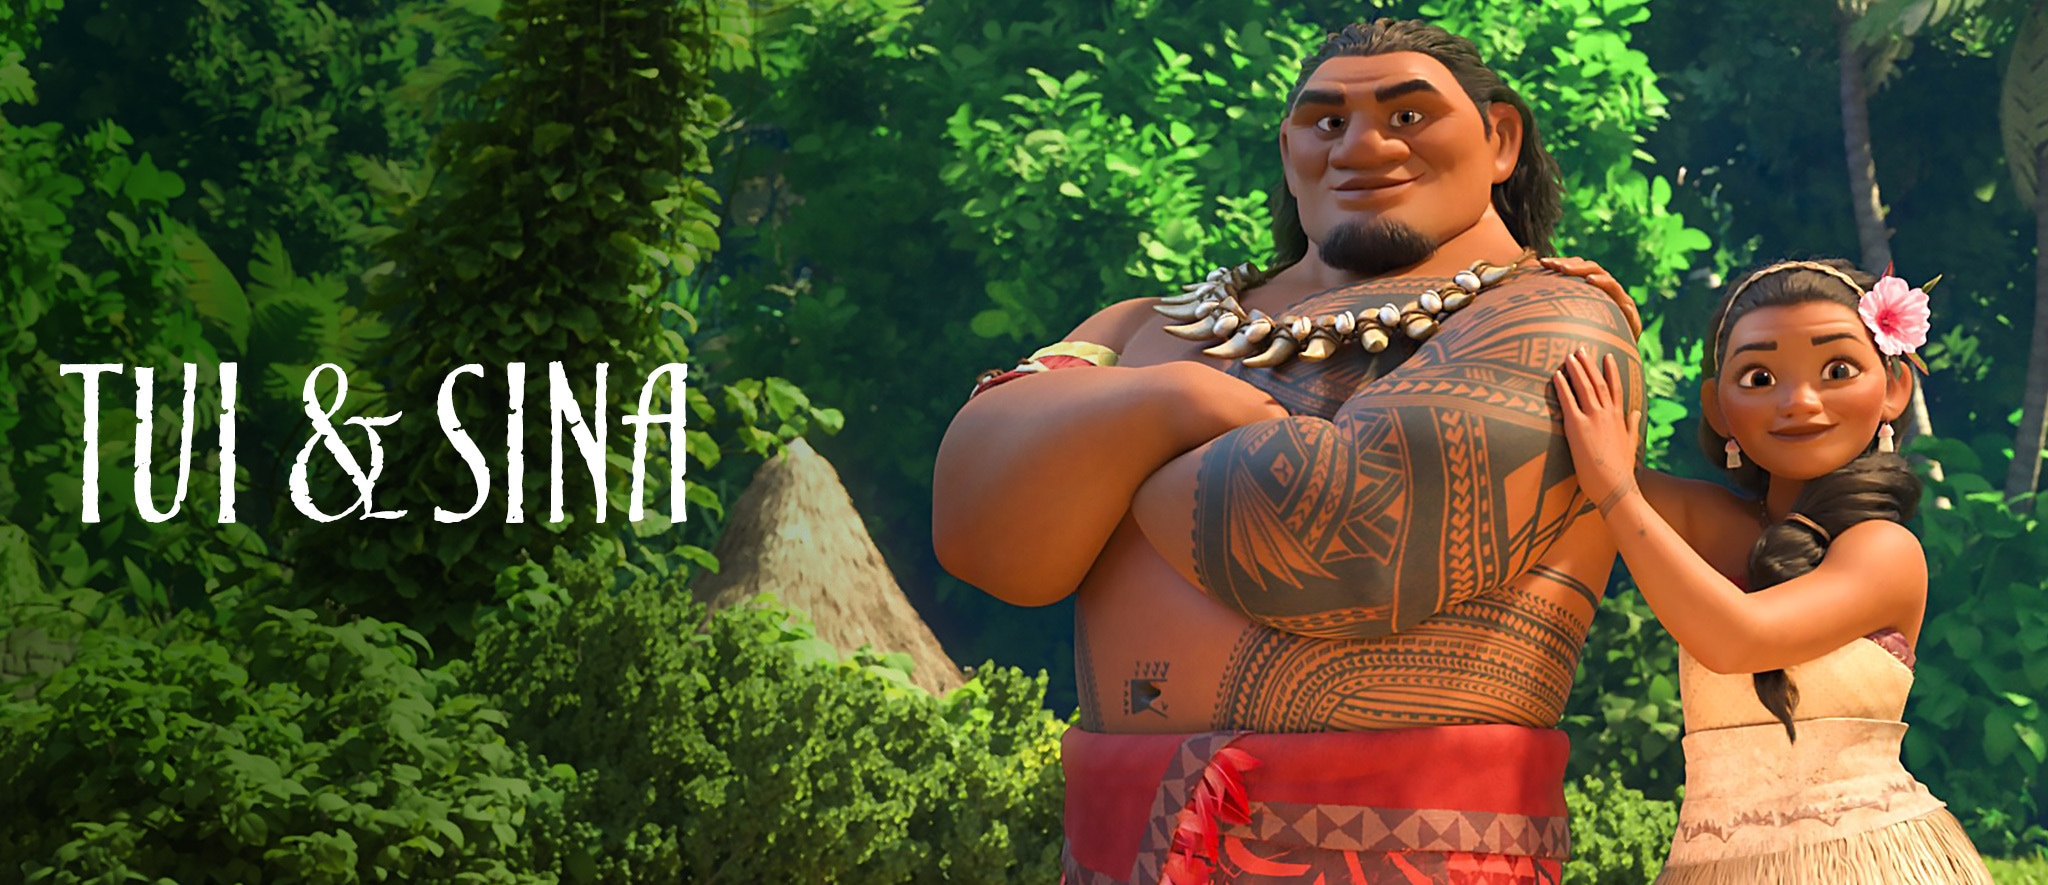 Moana's Parents Tui and Sina from Disney's Moana